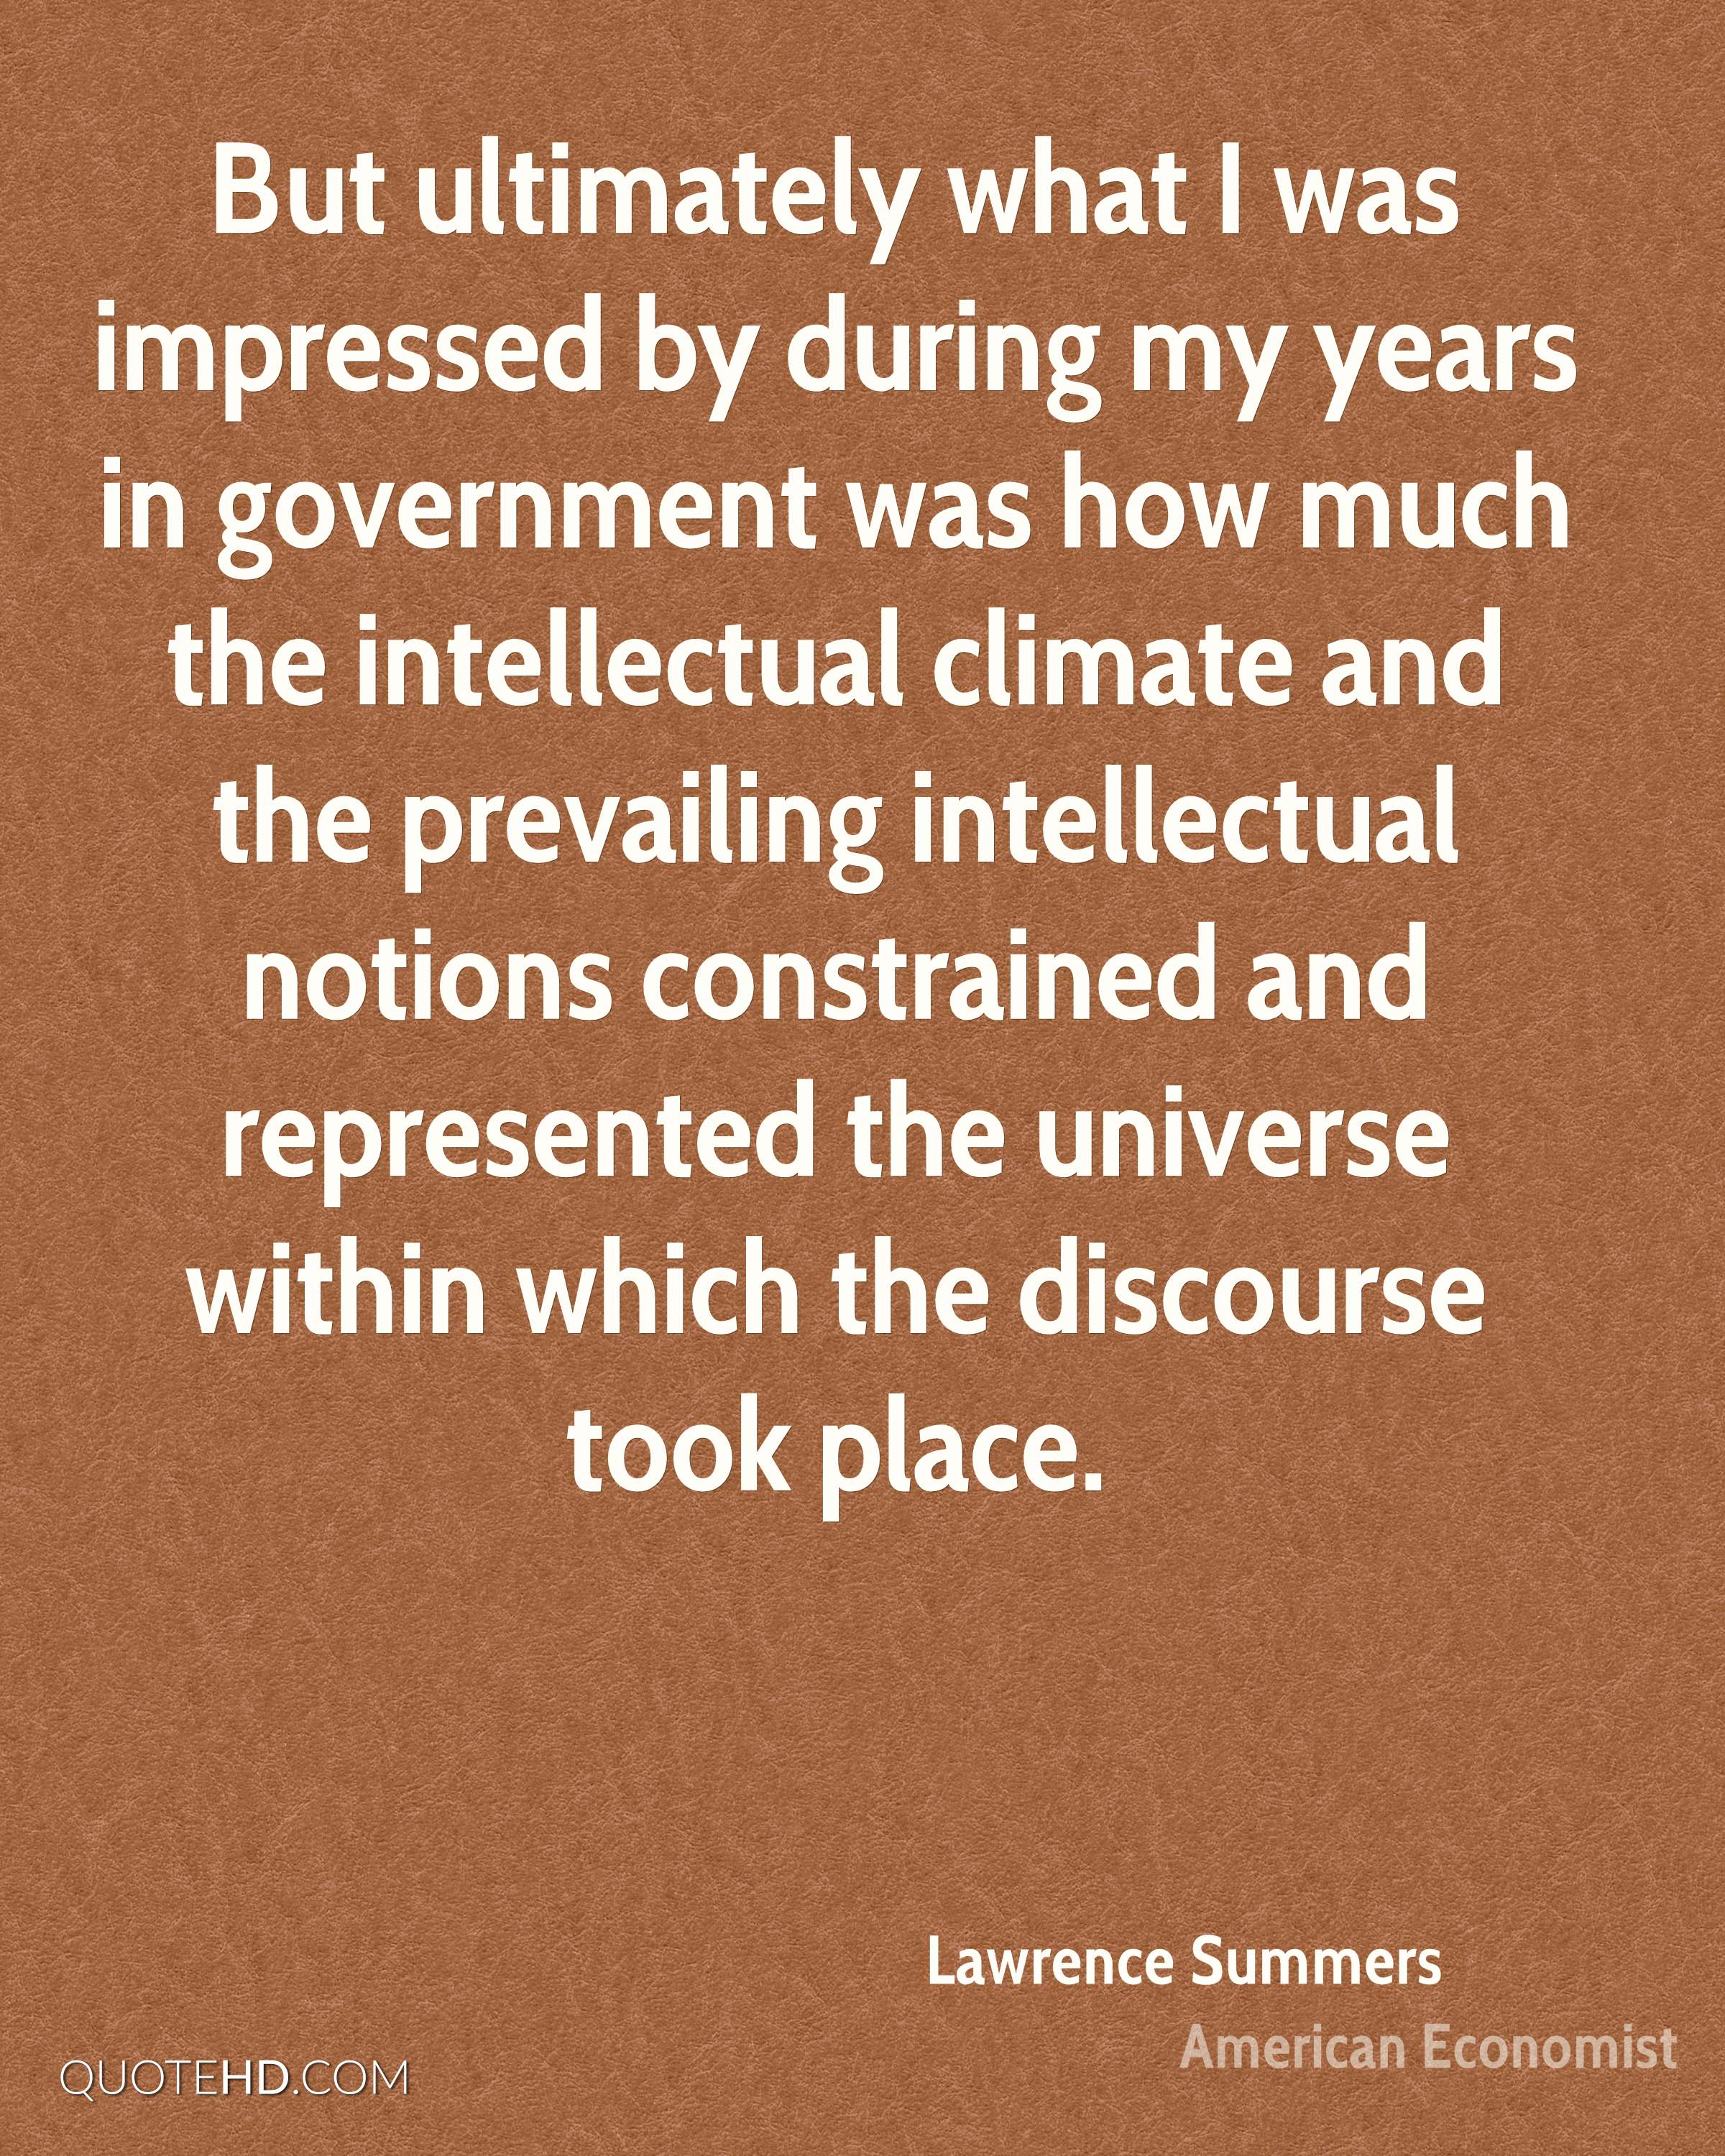 But ultimately what I was impressed by during my years in government was how much the intellectual climate and the prevailing intellectual notions constrained and represented the universe within which the discourse took place.